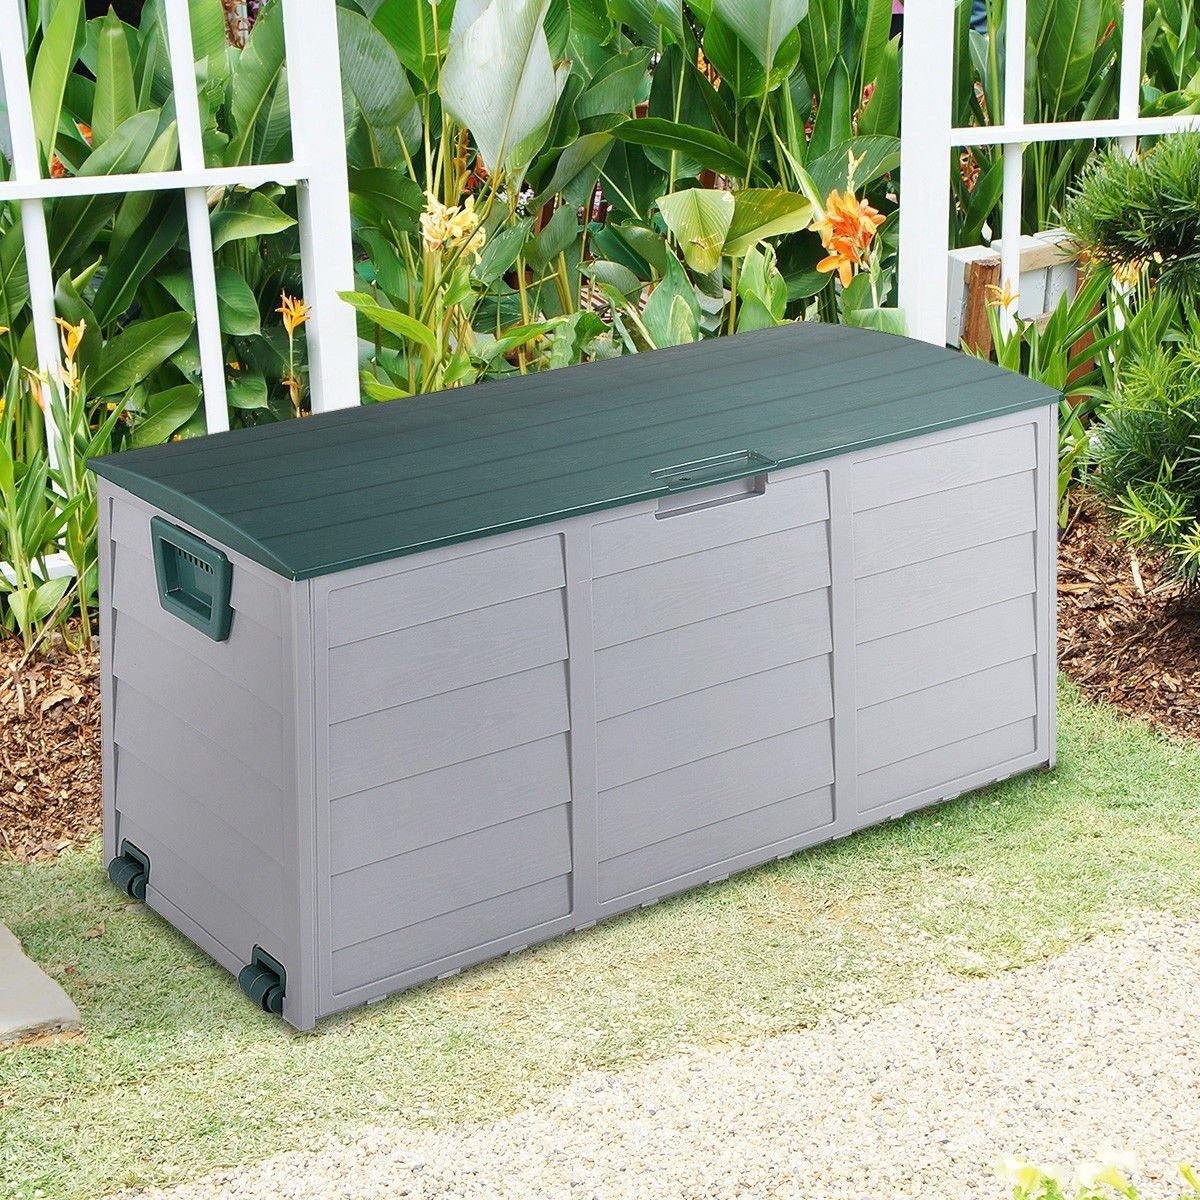 COSTWAY 70 Gallon Durable Outdoor Plasic Storage Box + FREE E-Book by COSTWAY (Image #6)